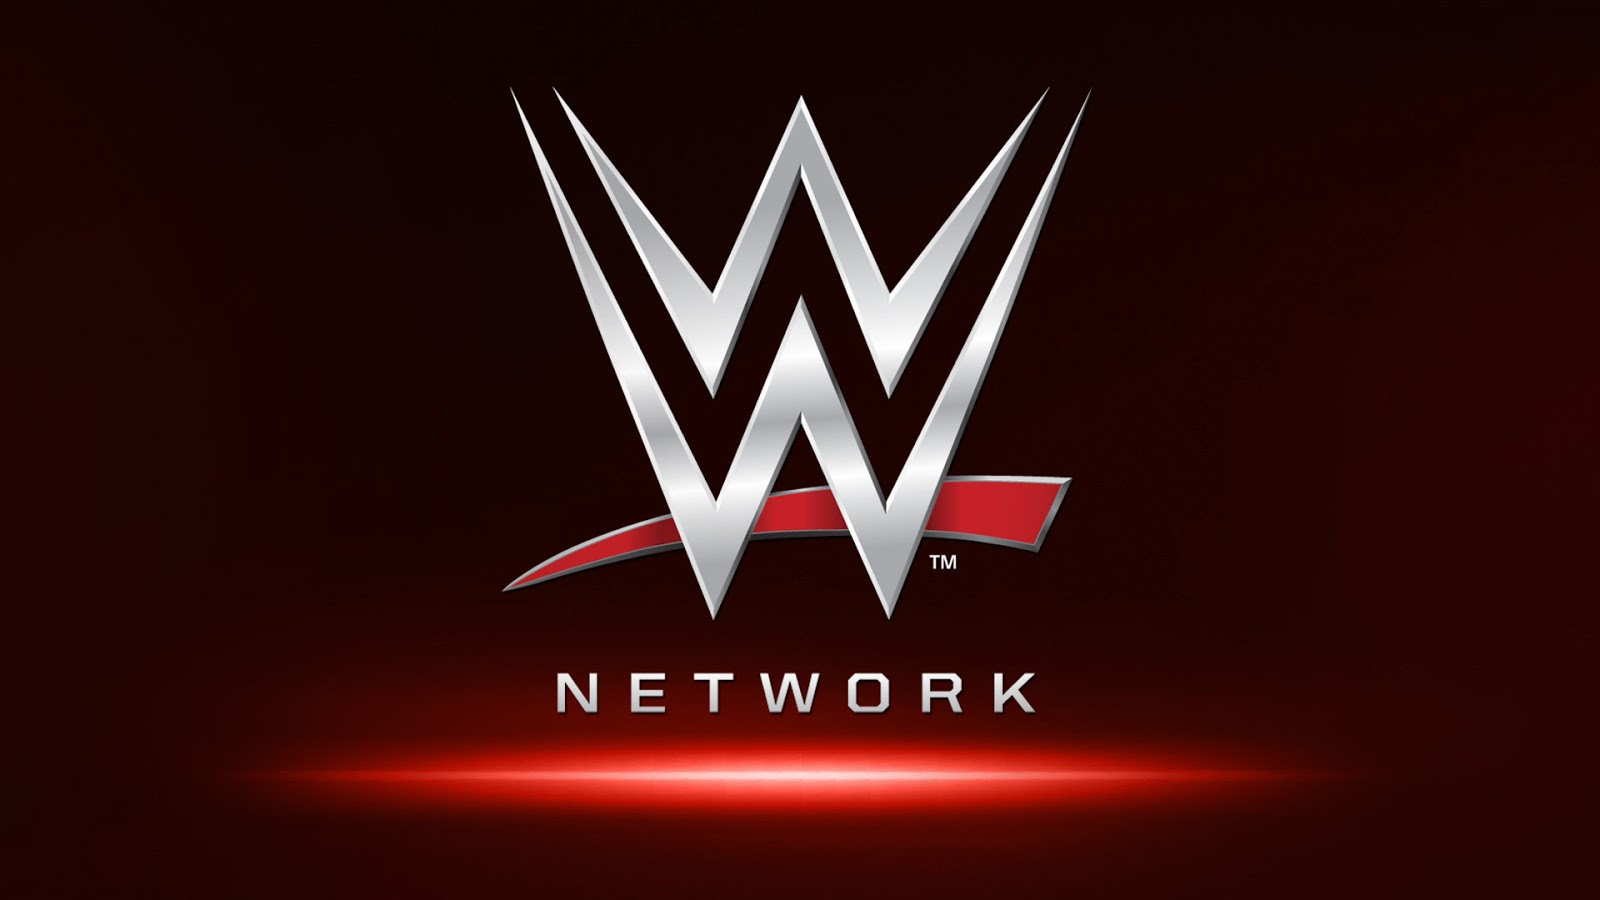 How to Watch YouTube & WWE Network on TiVo?